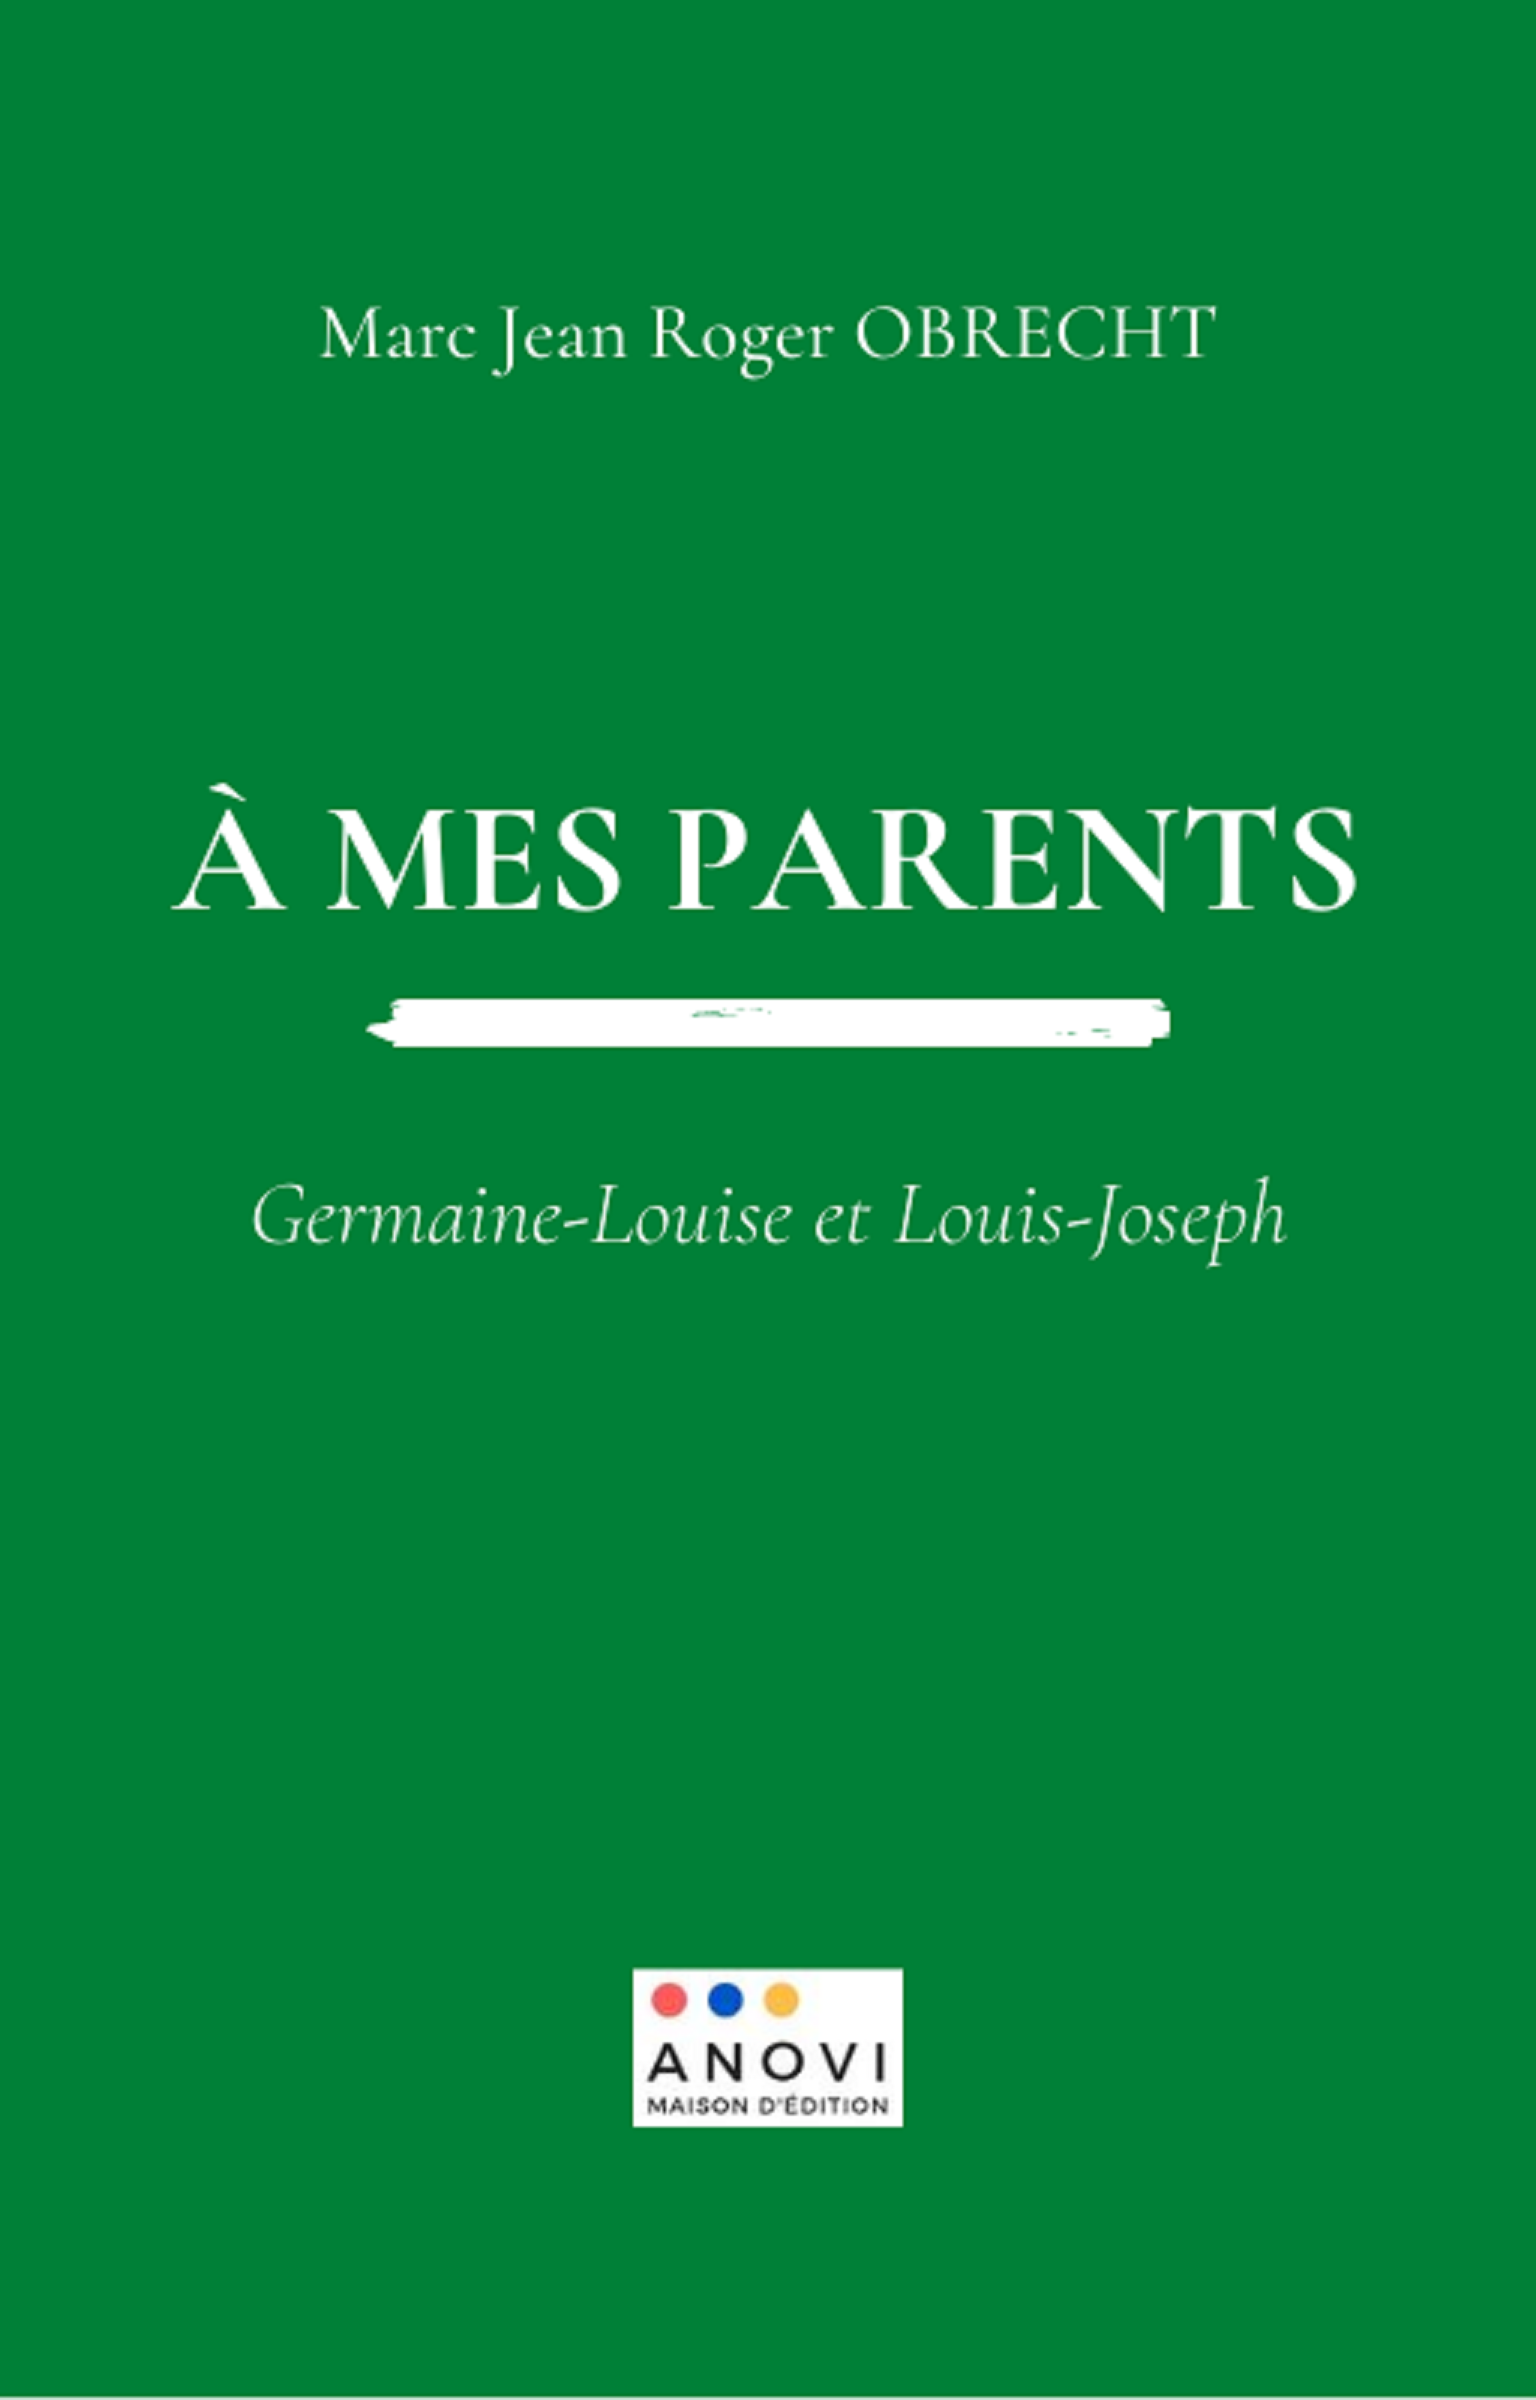 À mes parents: Germaine-Louise et Louis-Joseph Image